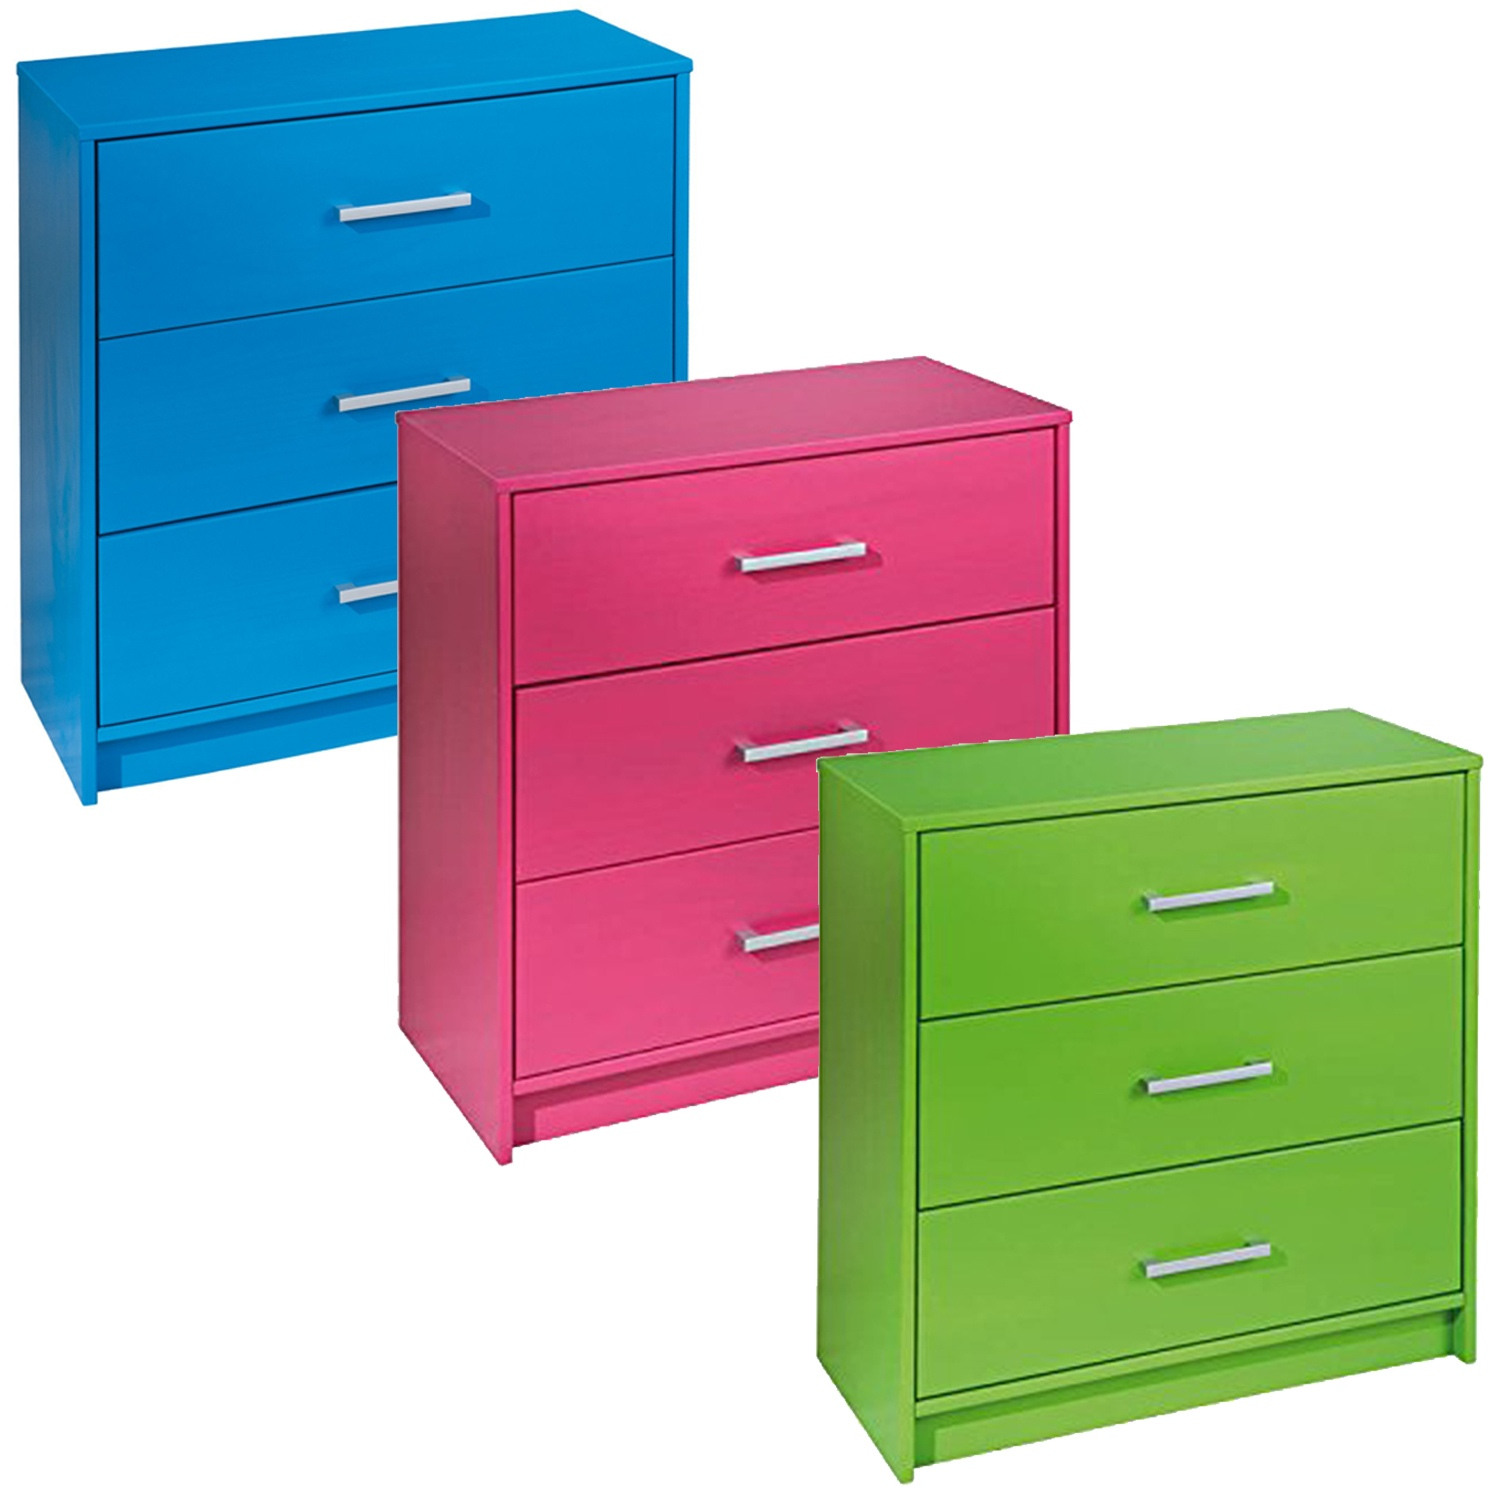 Details about New York 8 Drawer Wooden Chest Bedroom Furniture Storage  Cabinet Kids Drawers